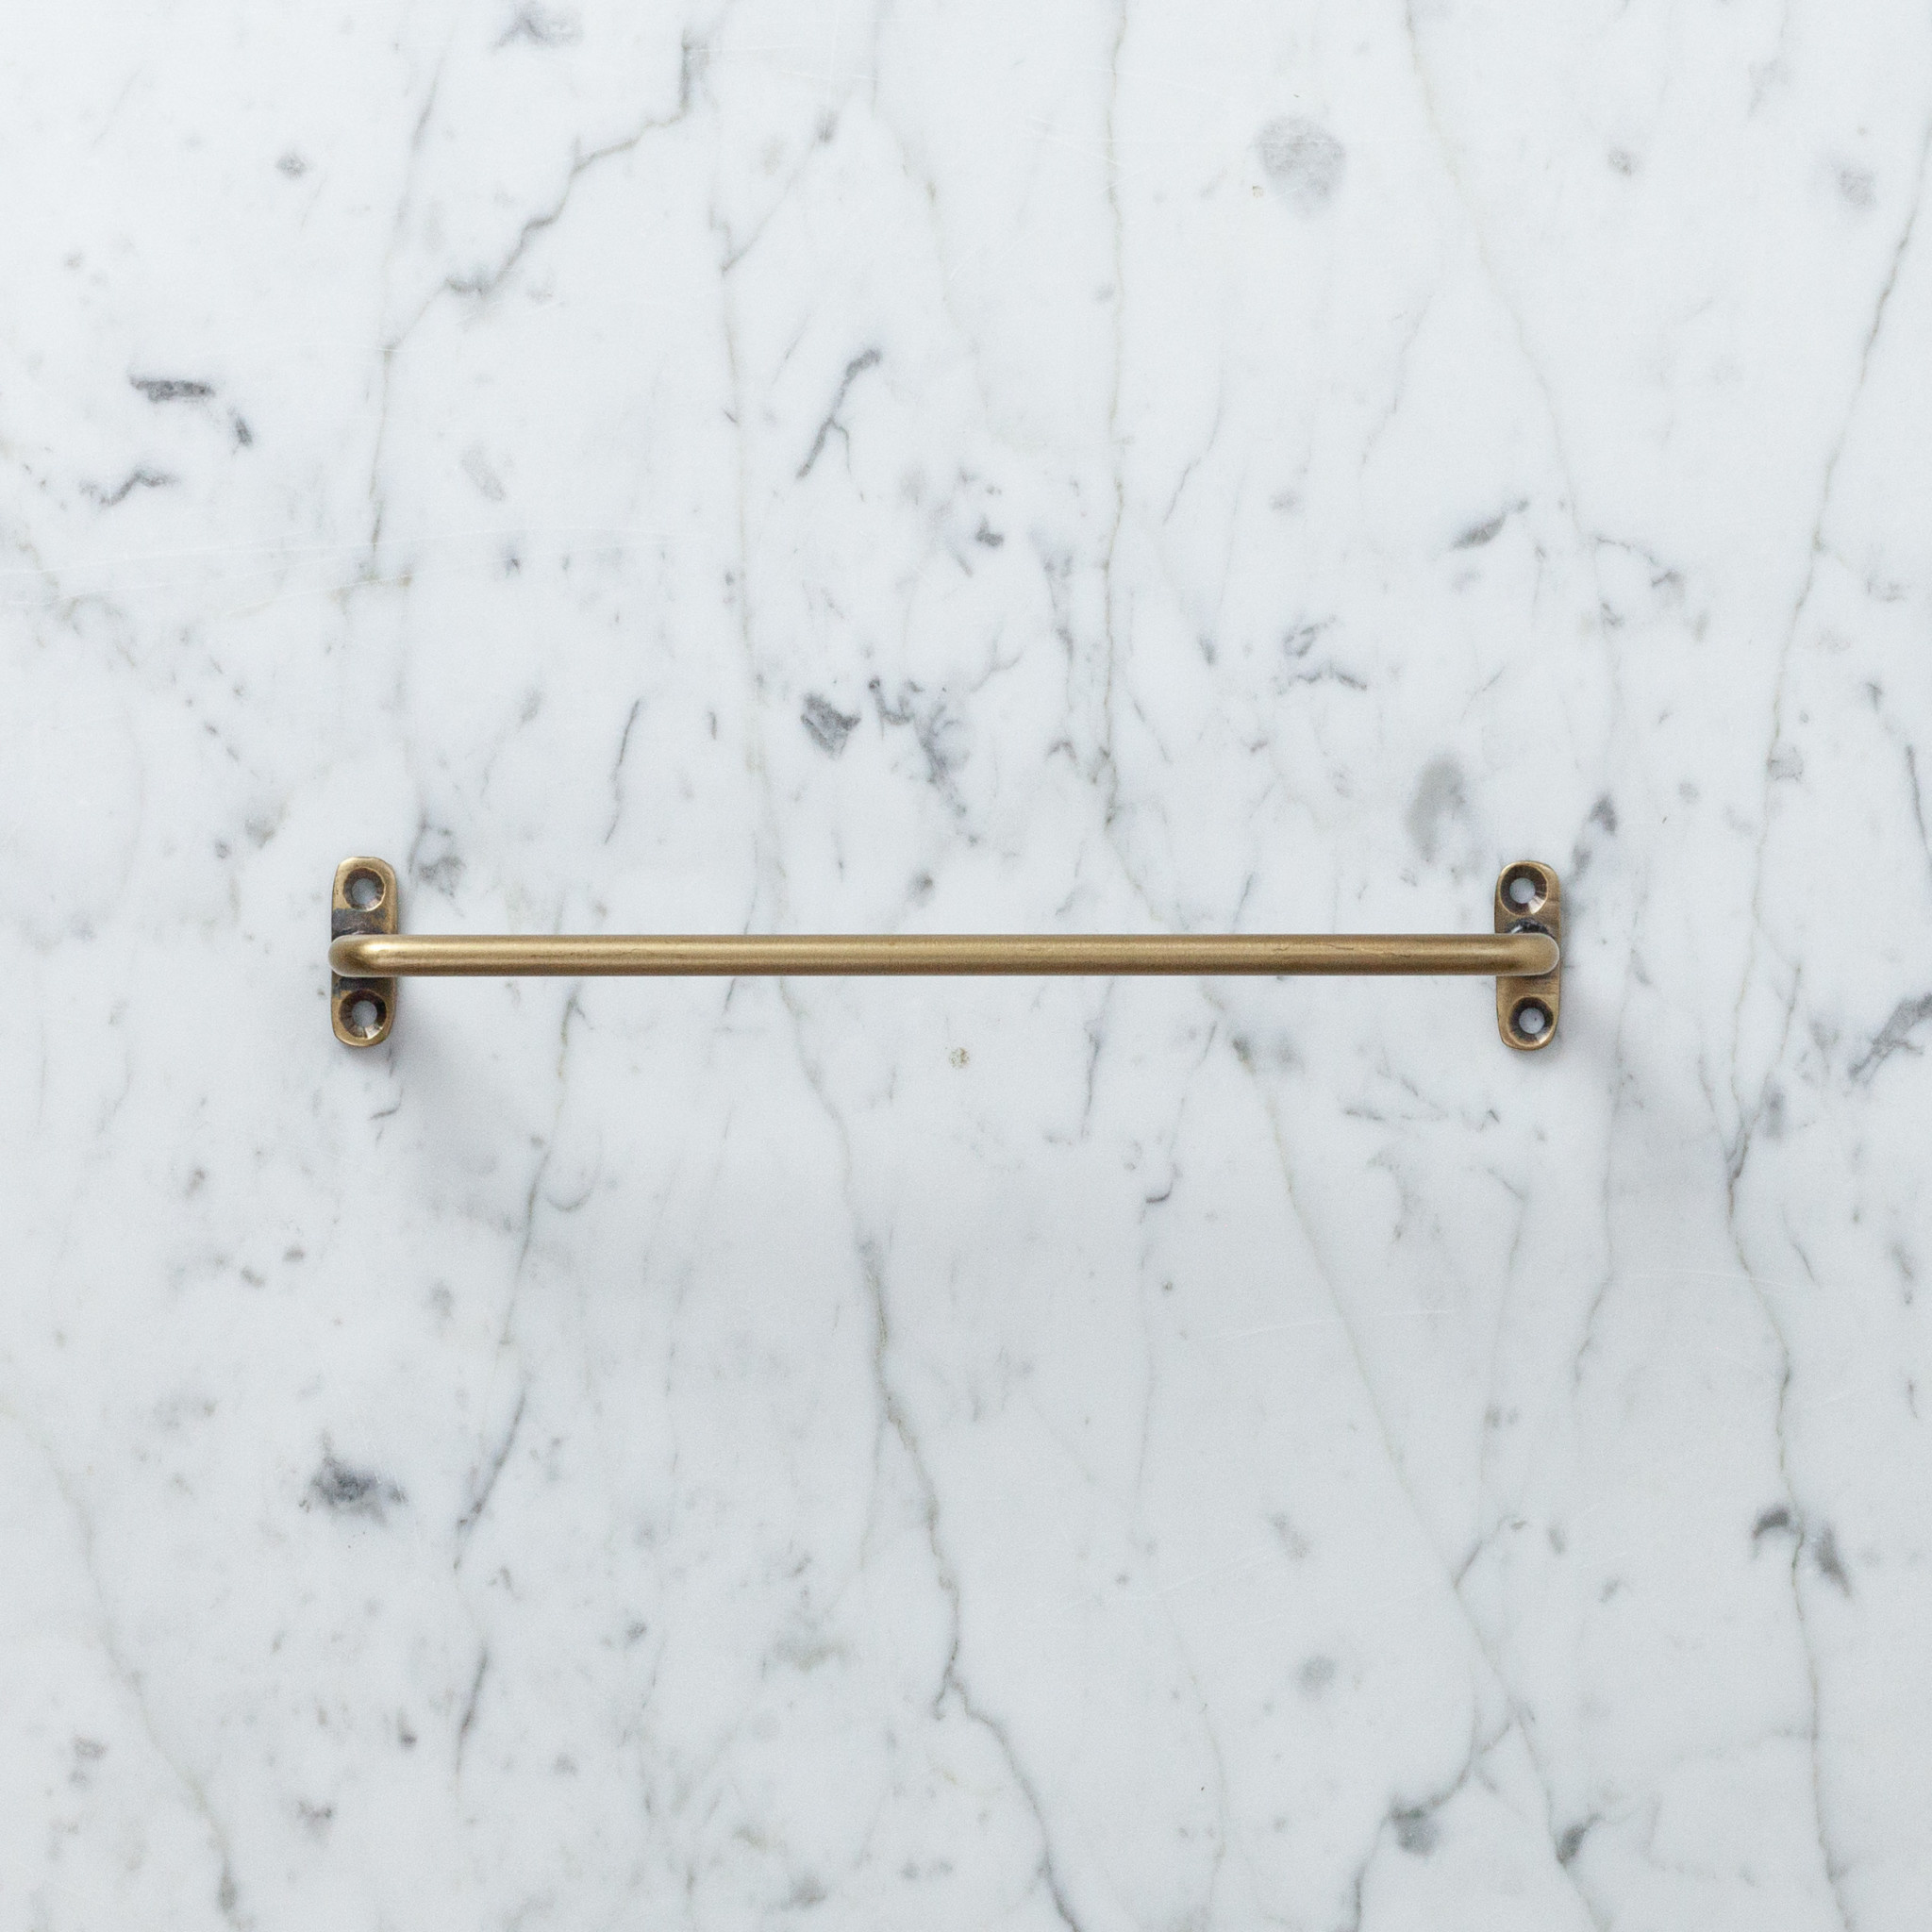 Small Brass Towel Bar - 7.75""